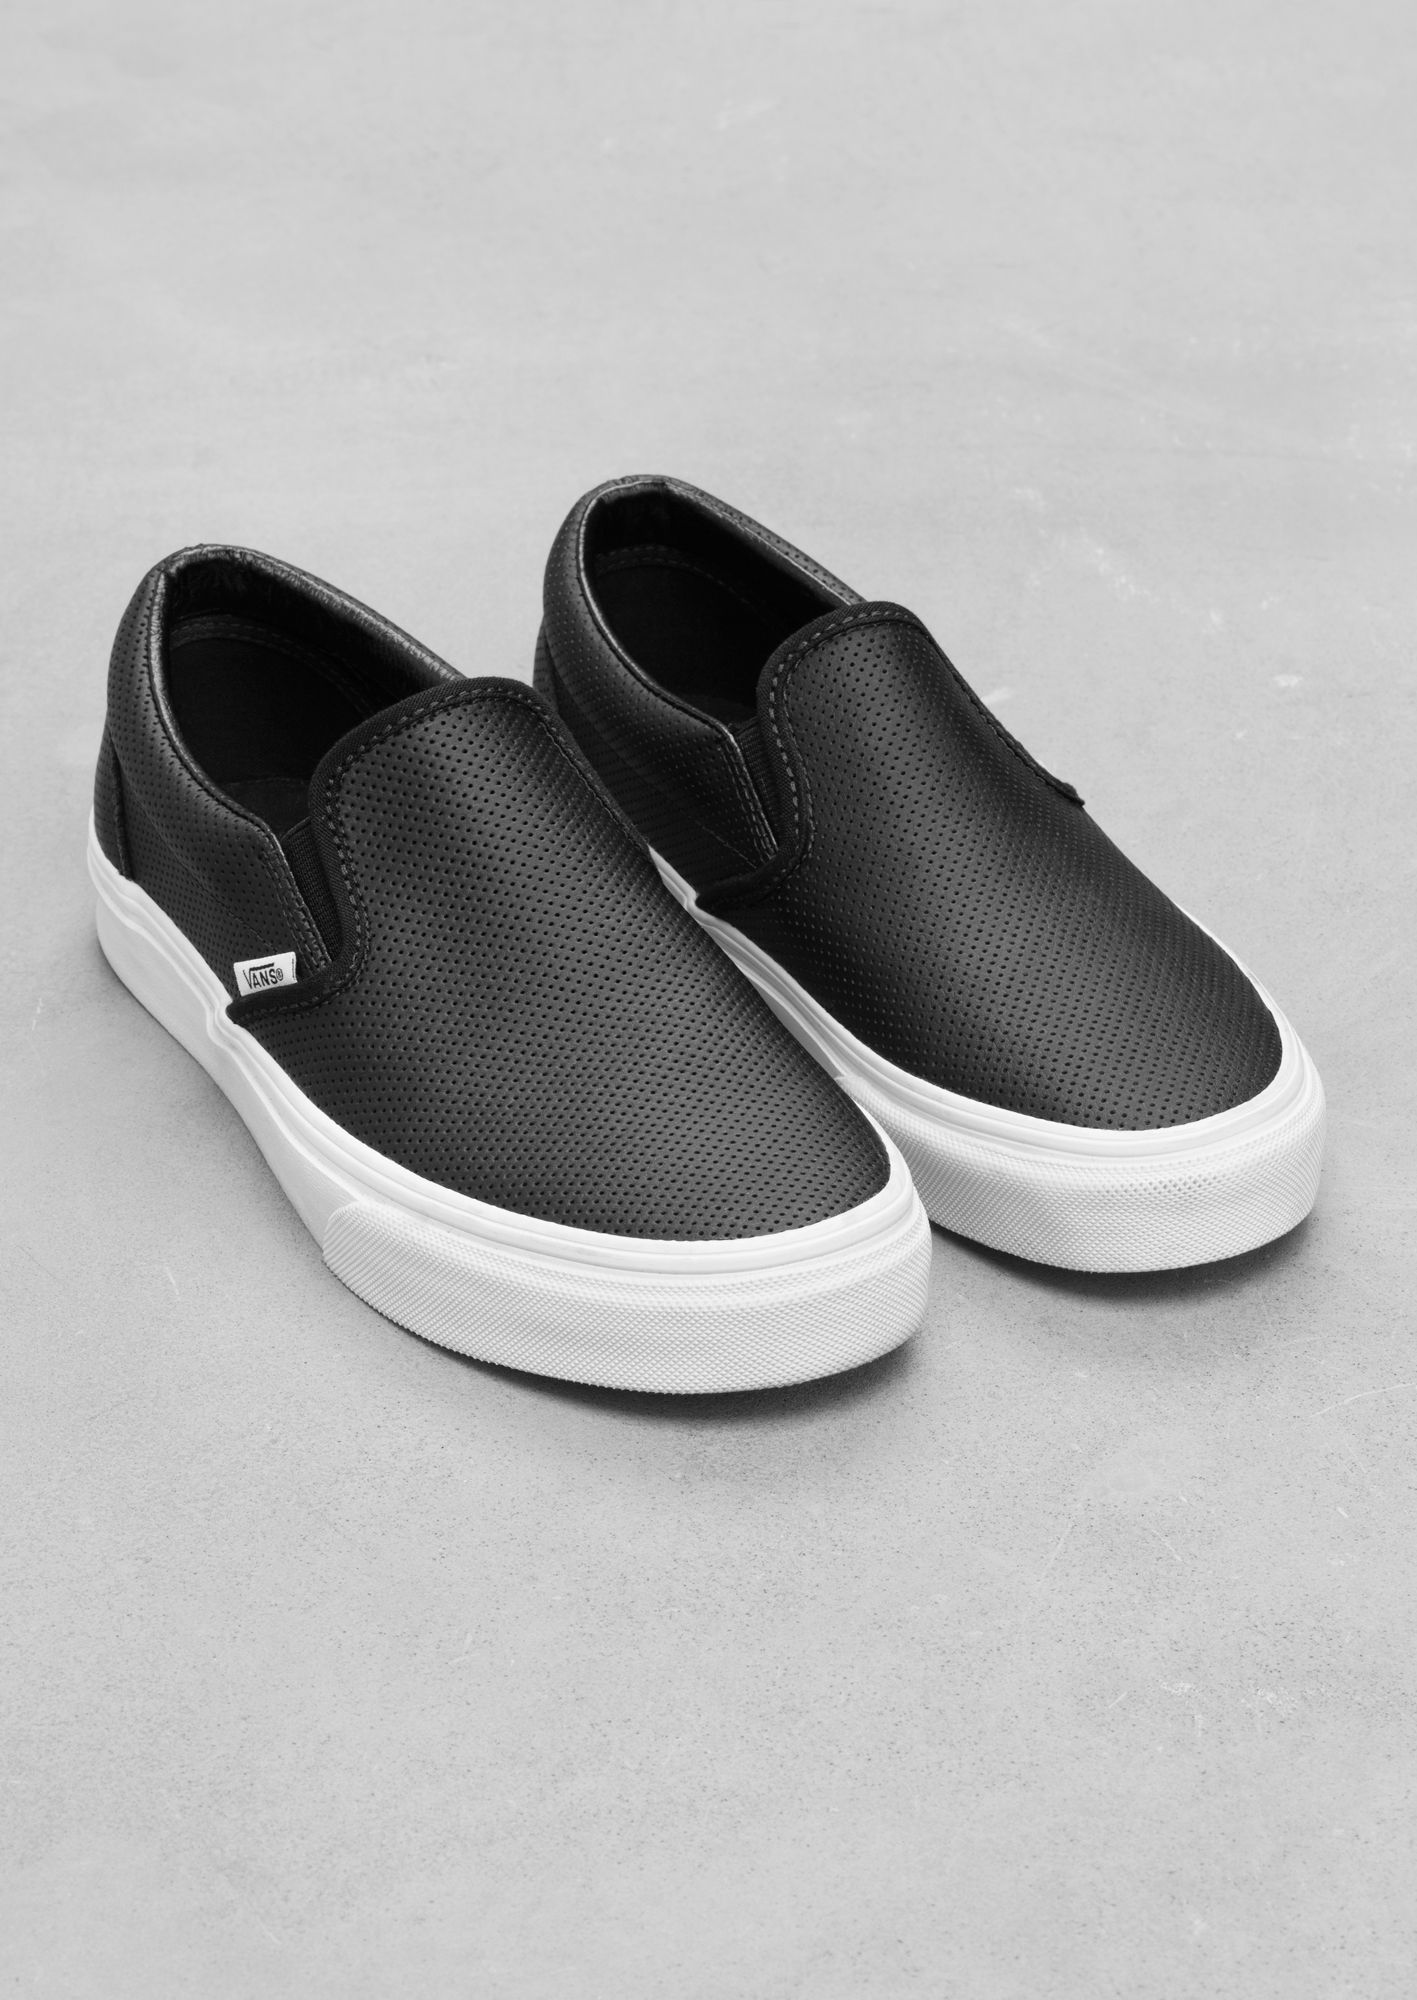 Vans Classic slip On Black Perforated Leather NWT